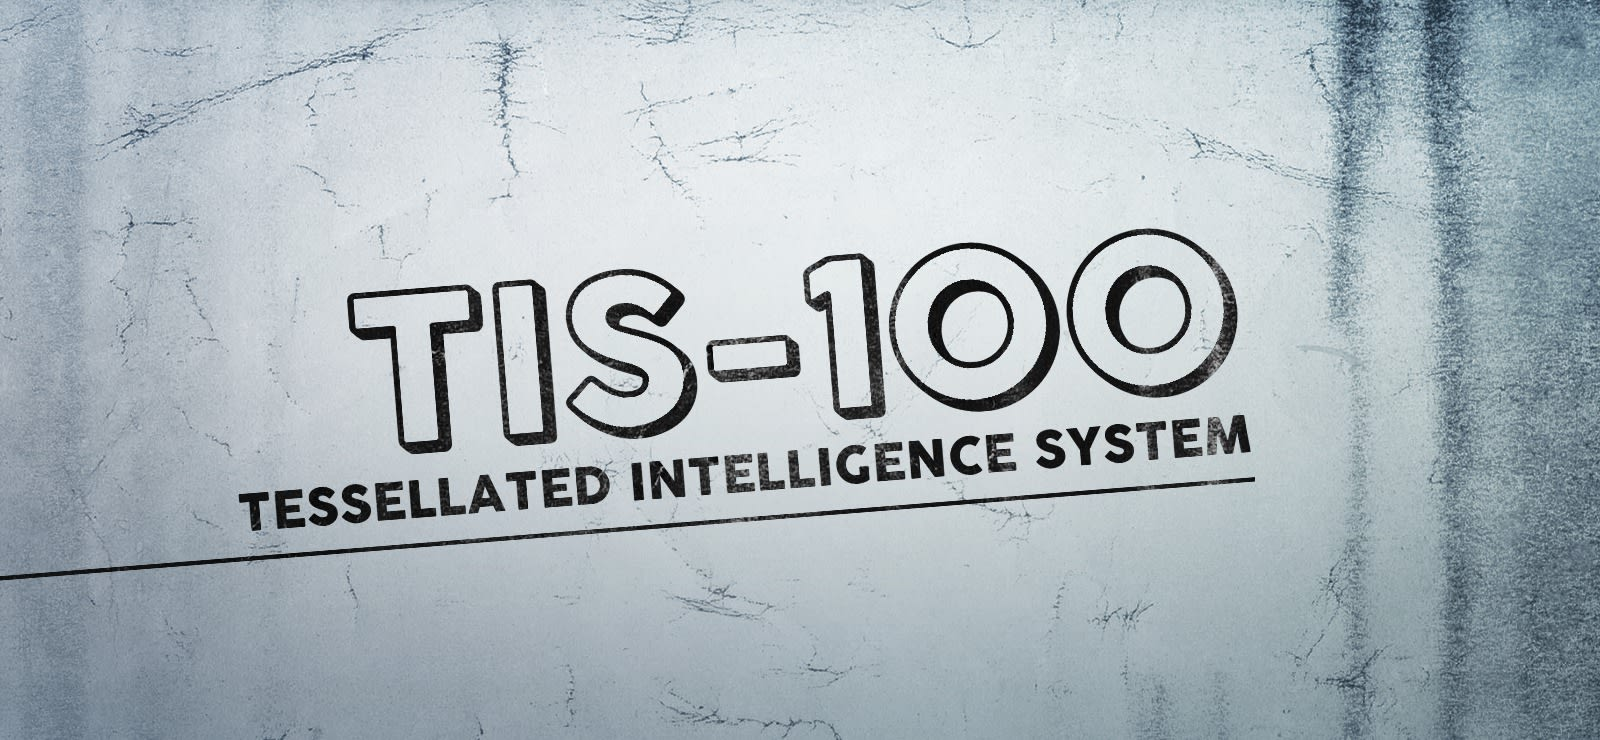 Tis-100 varies-with-device